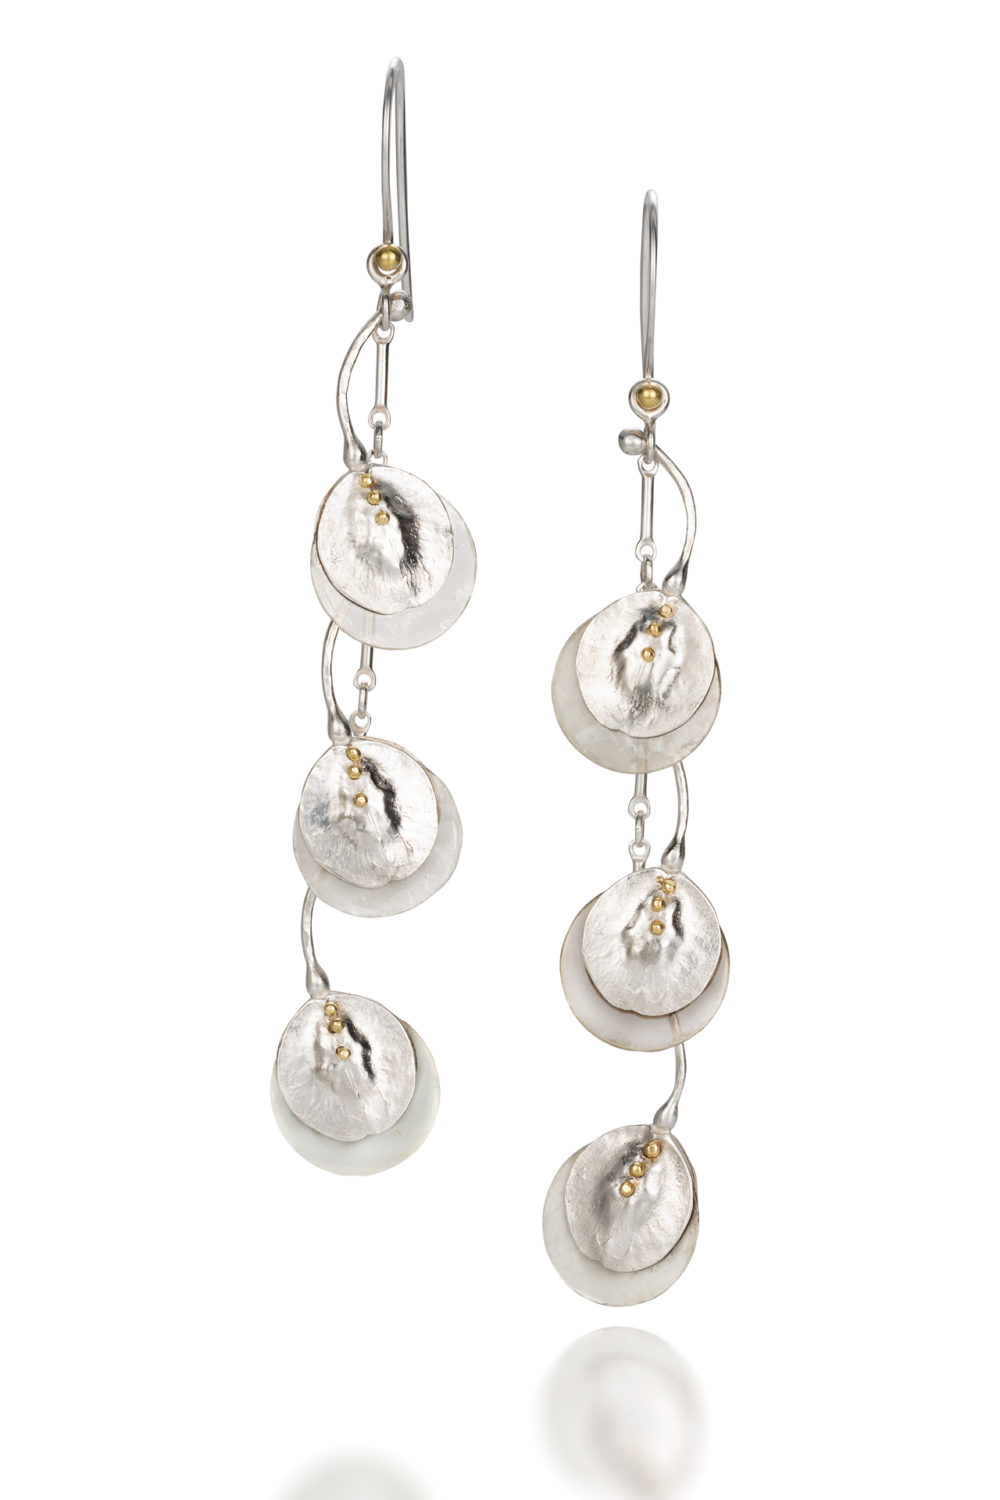 NISA Jewelry Moon Pod Earrings on white